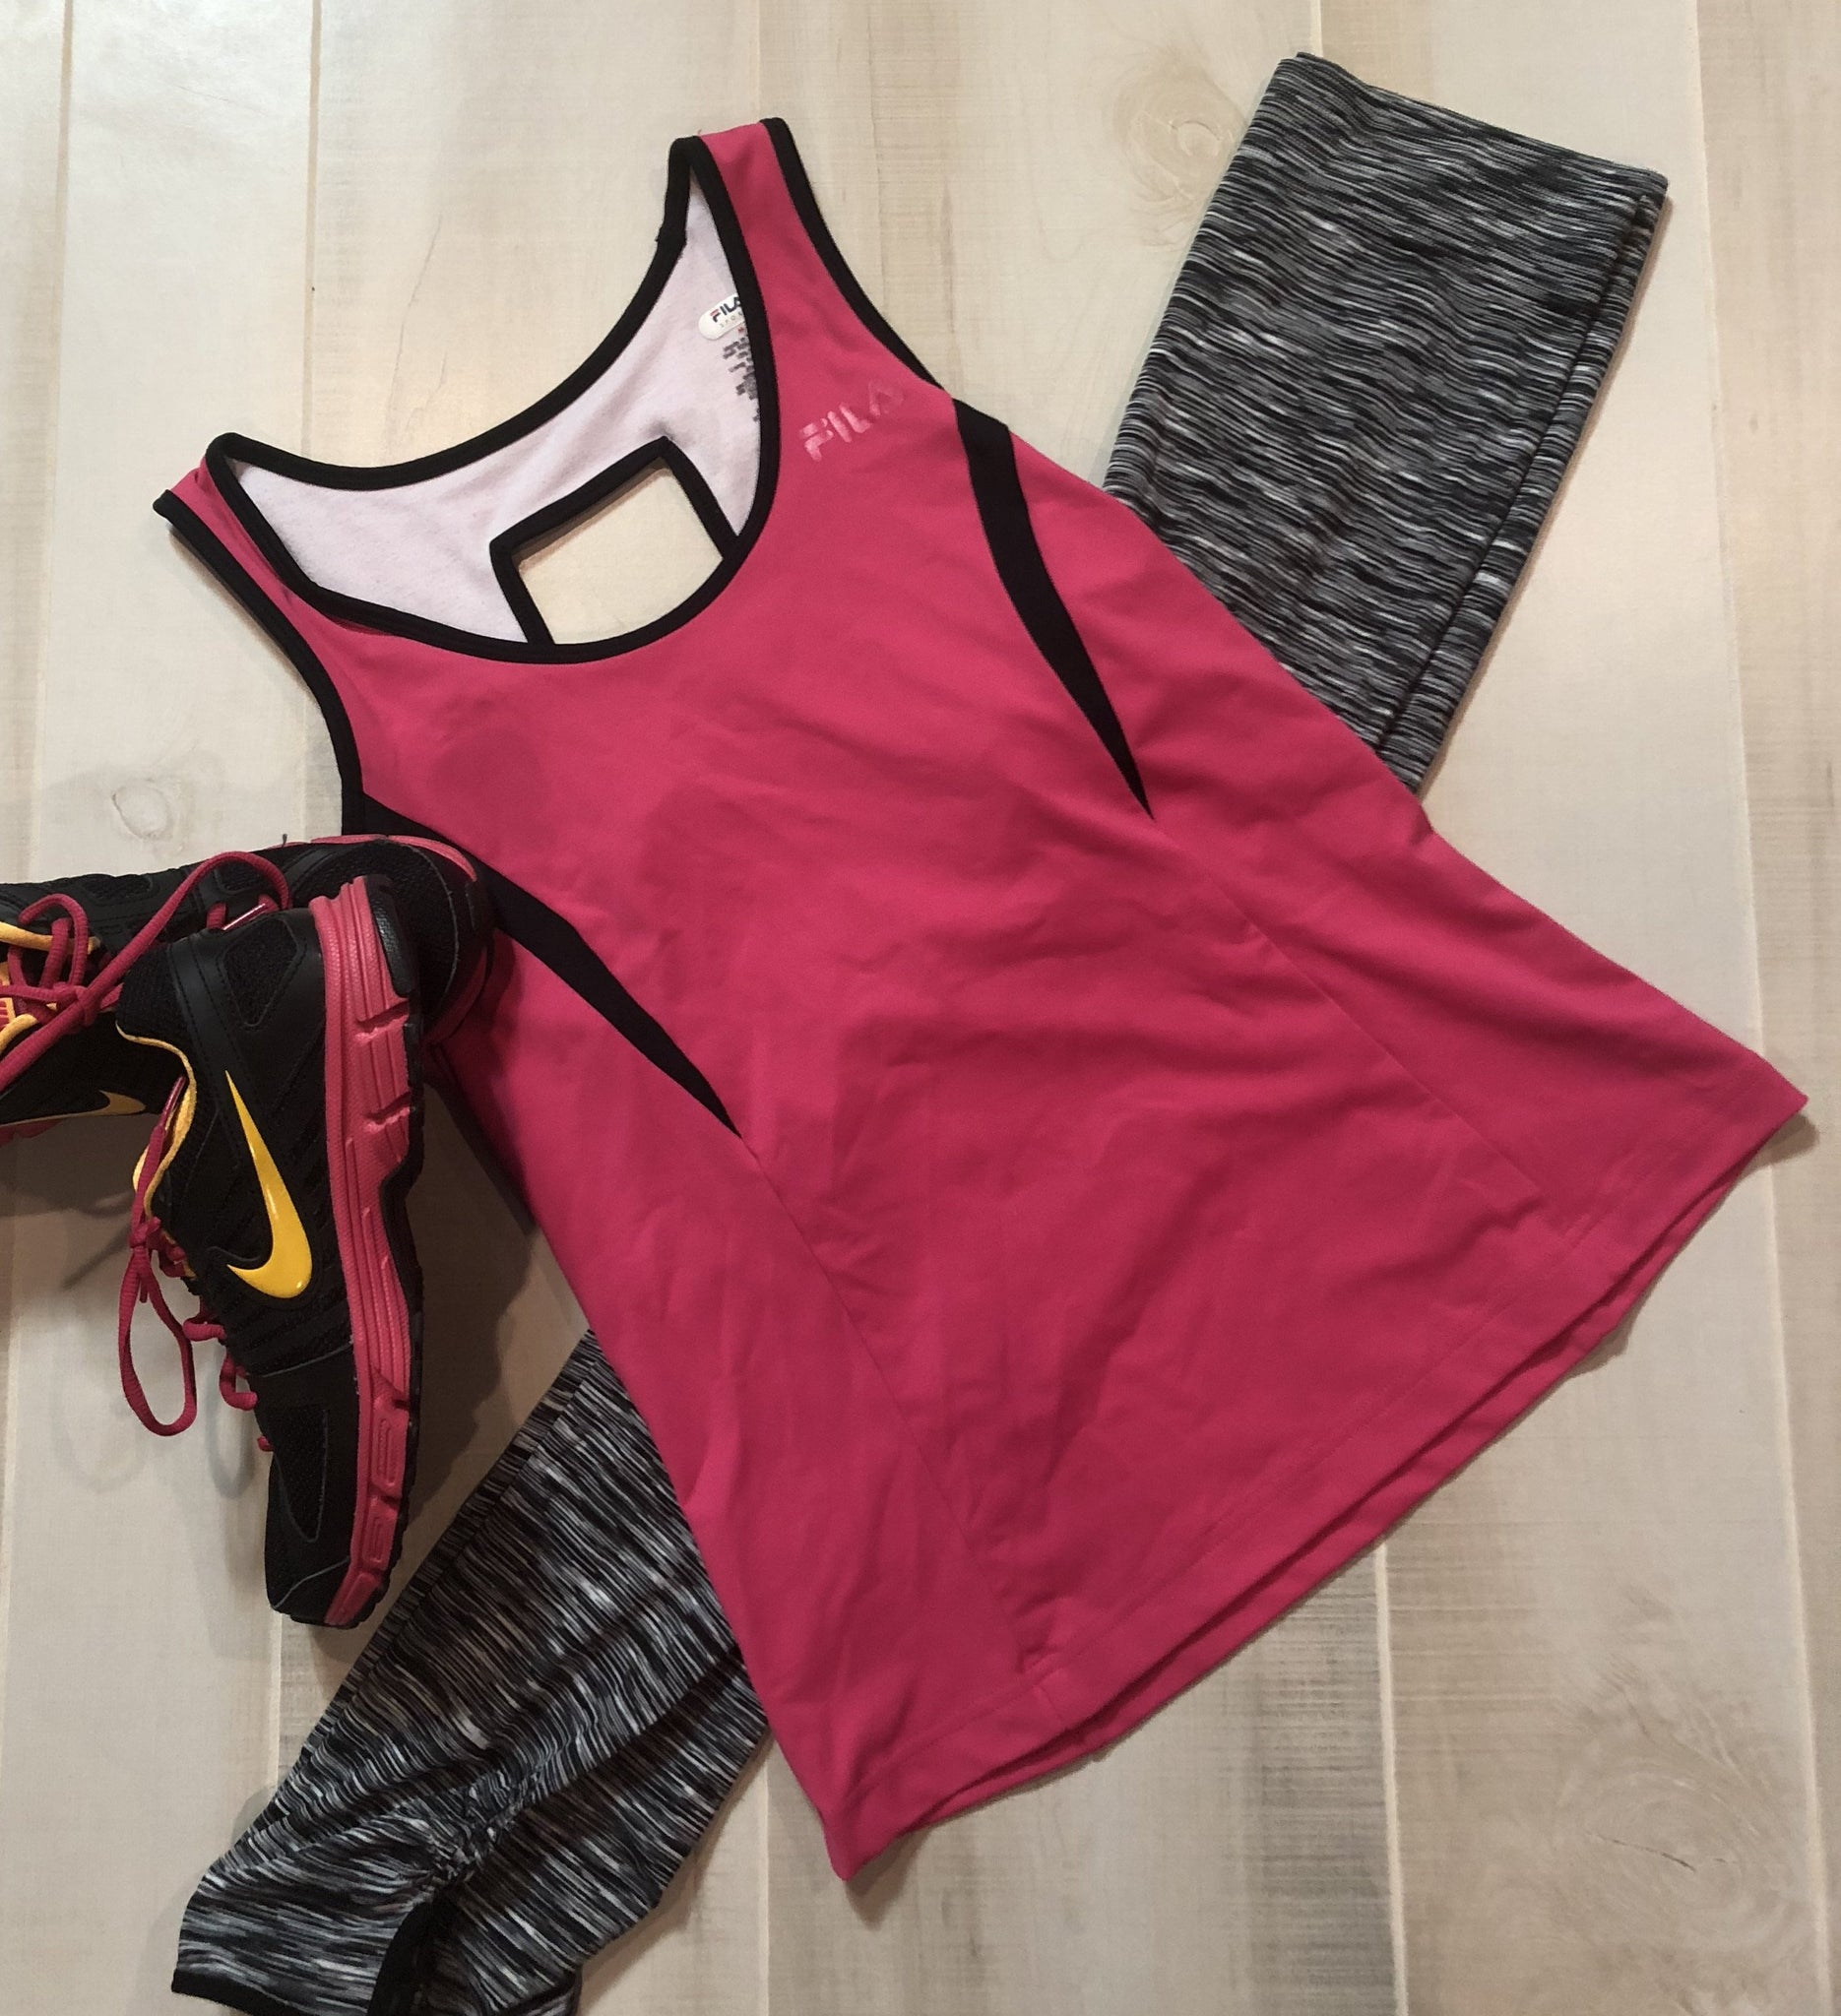 FILA Workout Tank with Built-in Bra